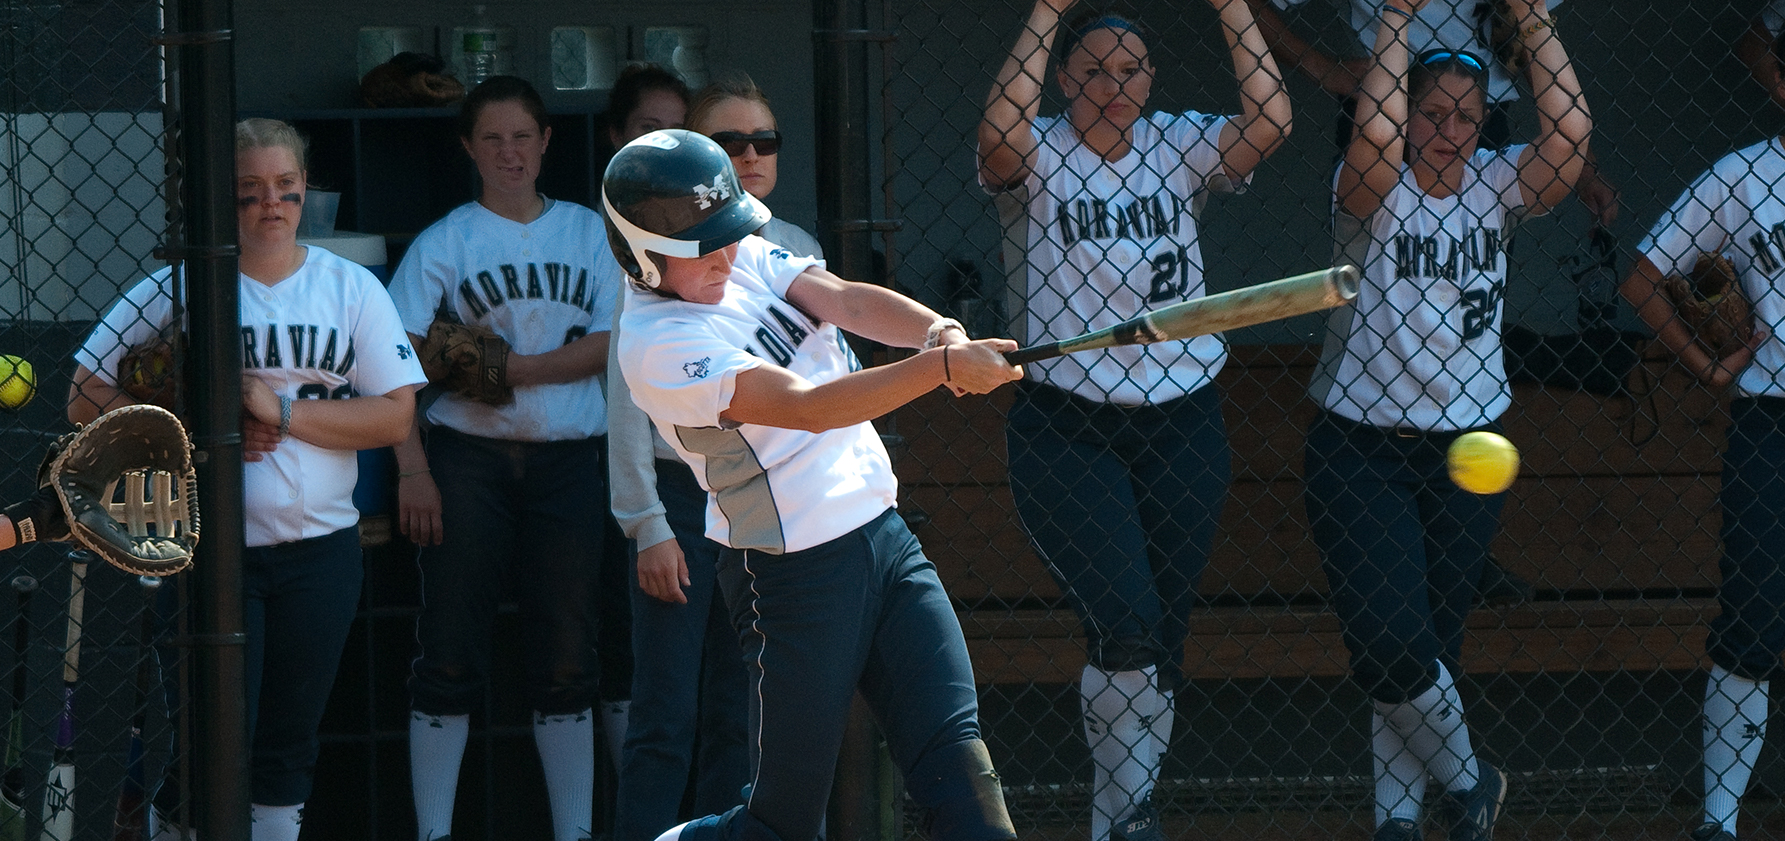 Softball player at bat